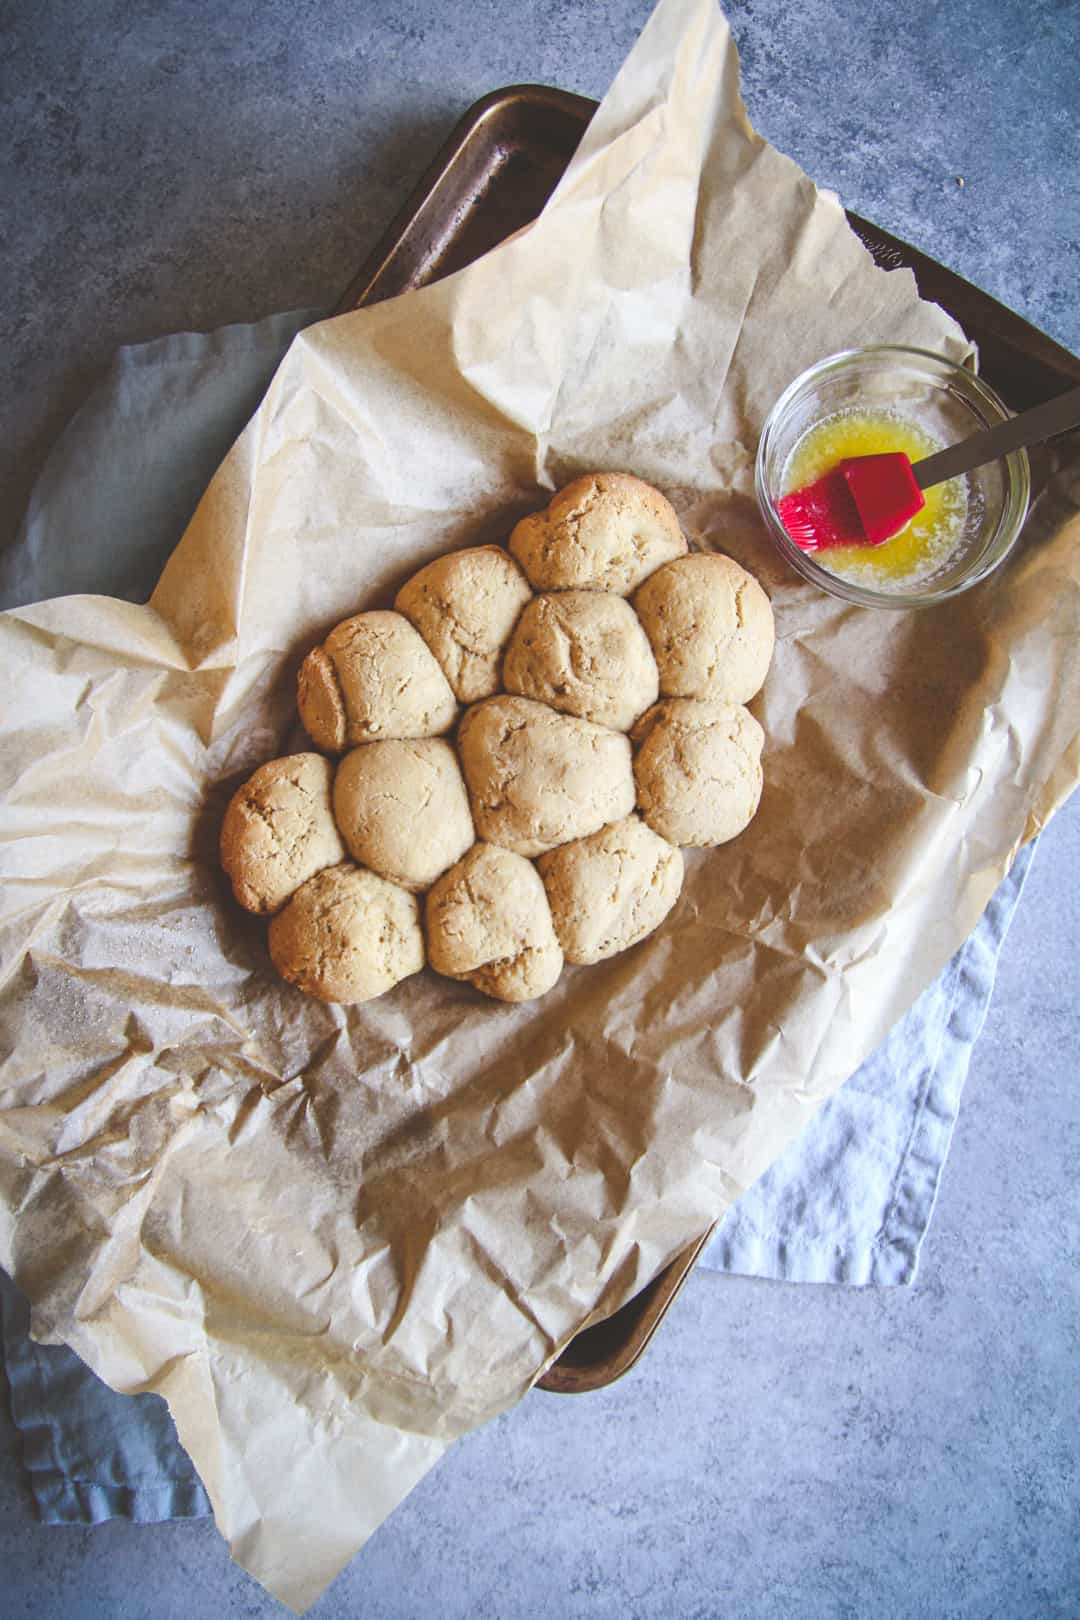 whole wheat dinner rolls made in a slow cooker from @sweetphi, whole wheat dinner rolls recipe made in a slow cooker perfect for a dinner or brunch menu